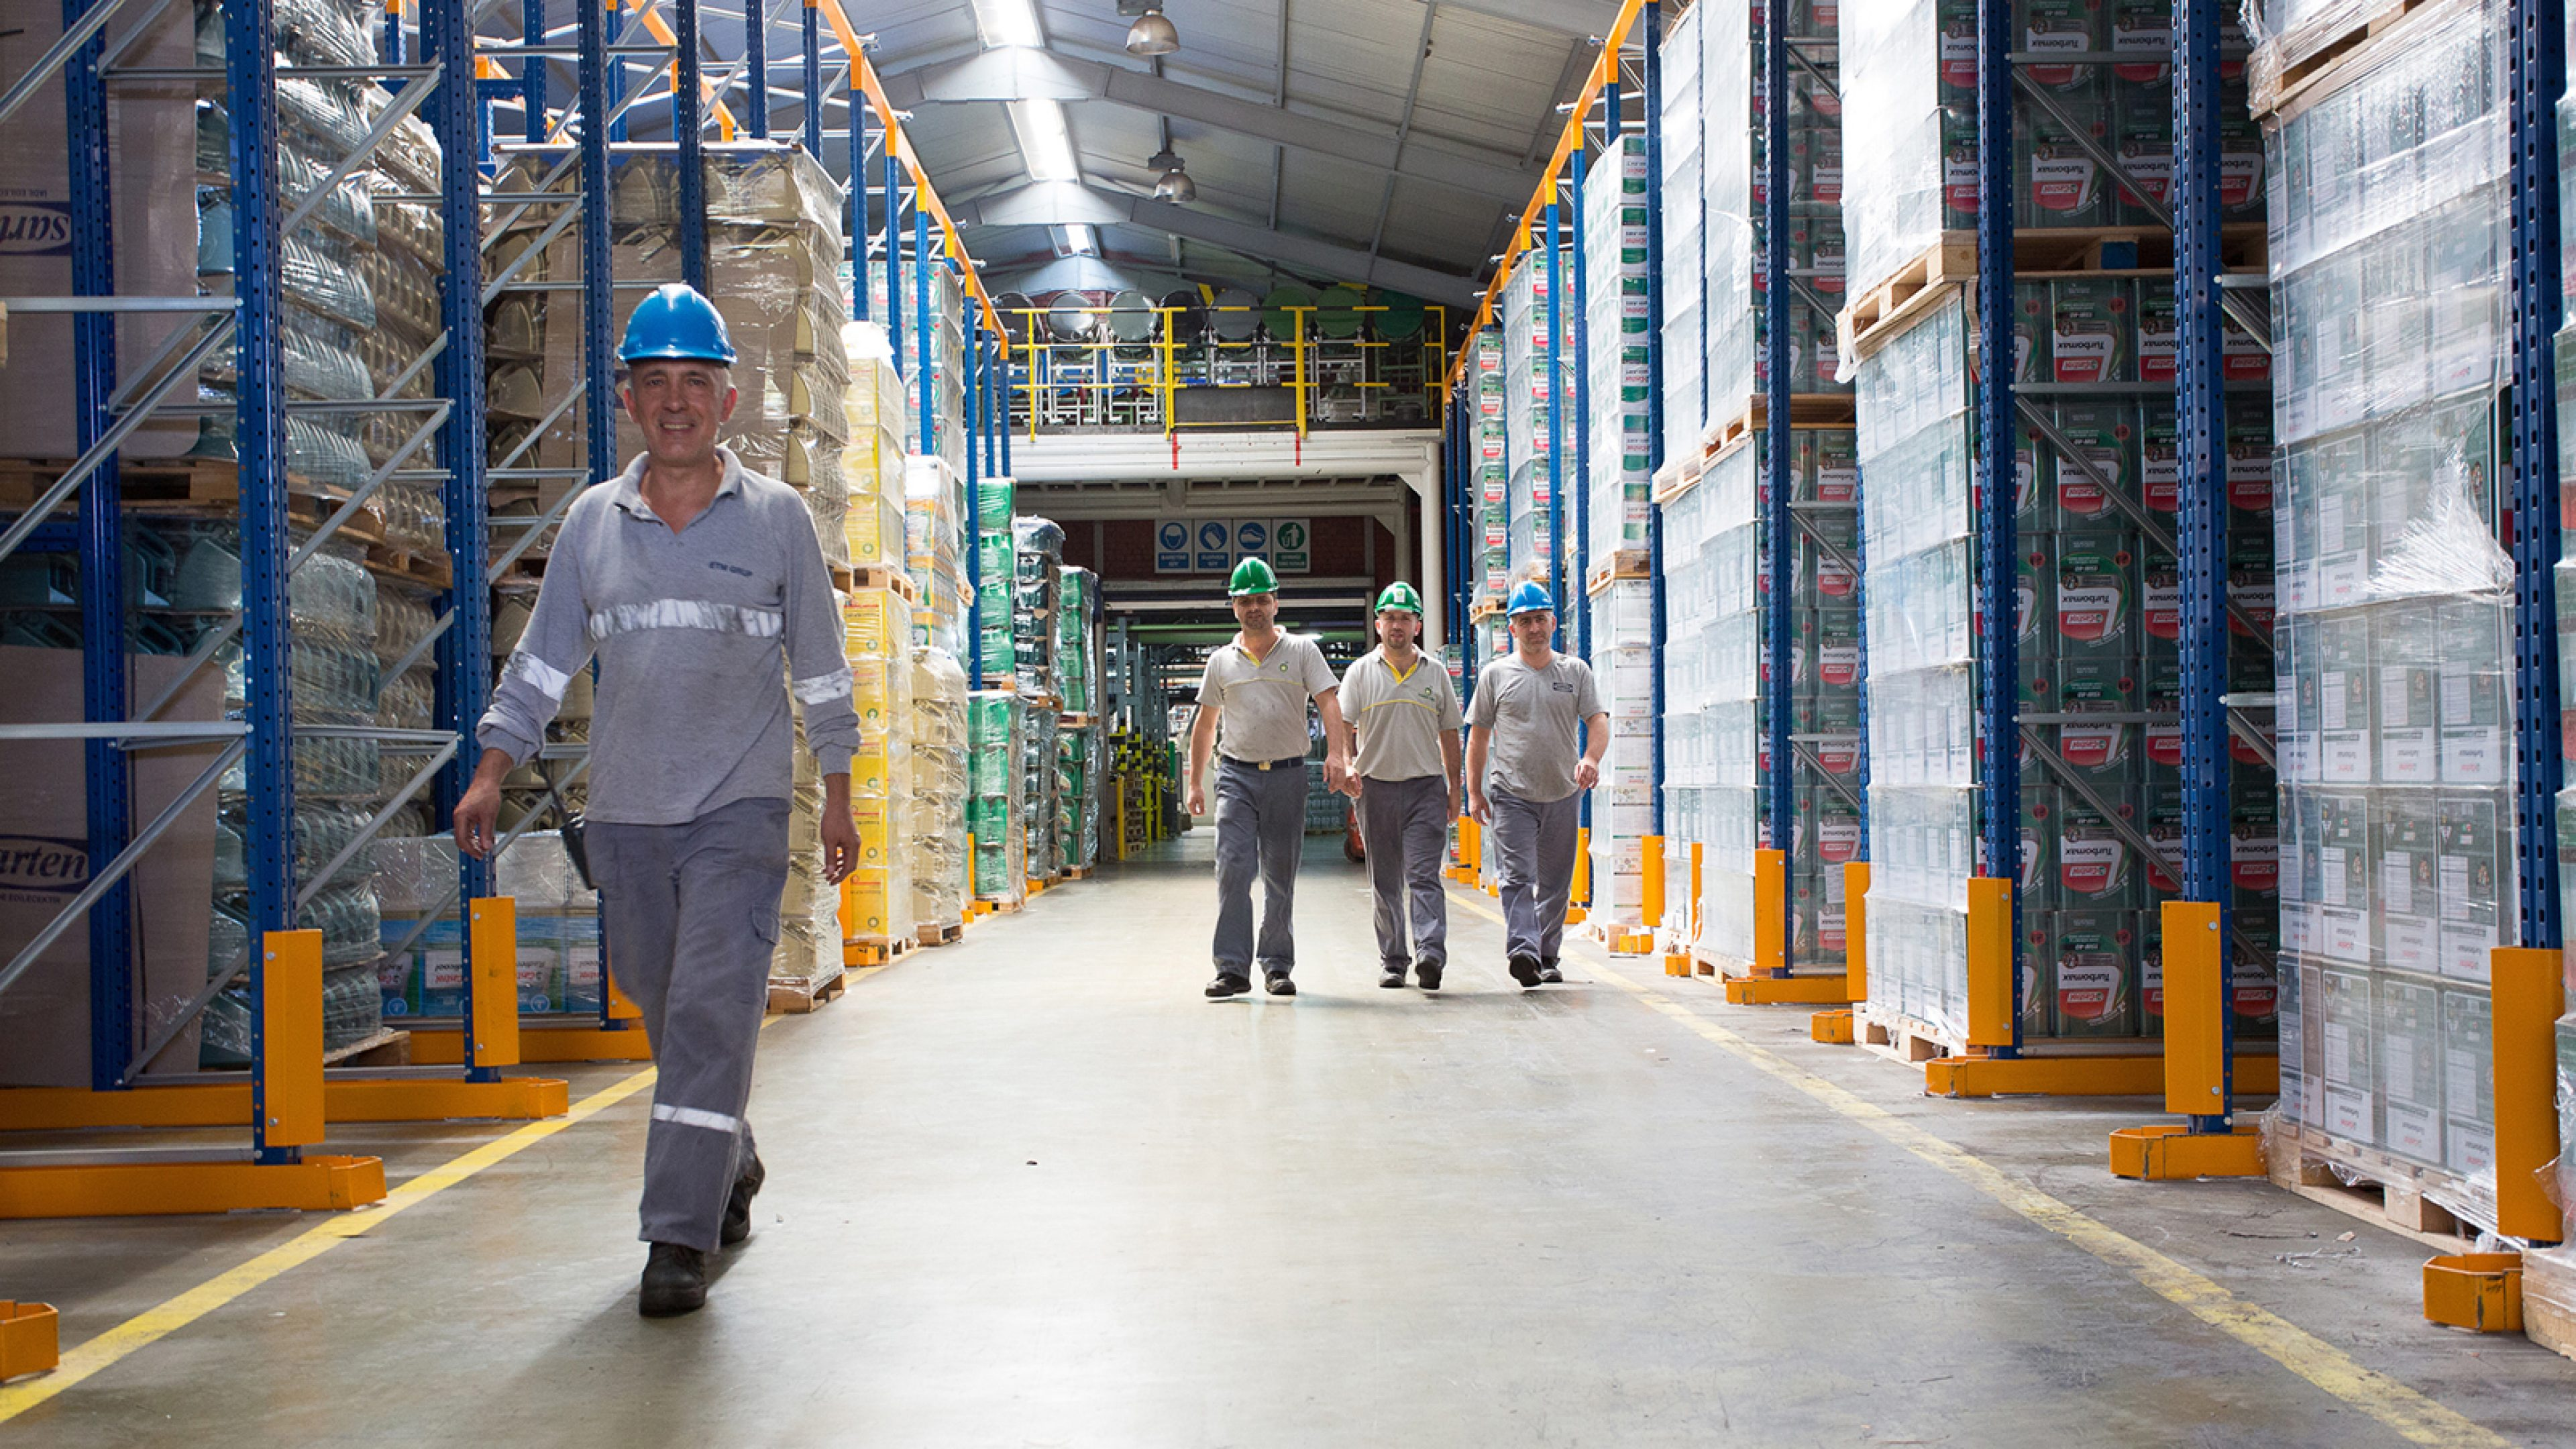 Workers walking through the packaging warehouse at the BP Gemlik Lubricants Plant, Turkey.